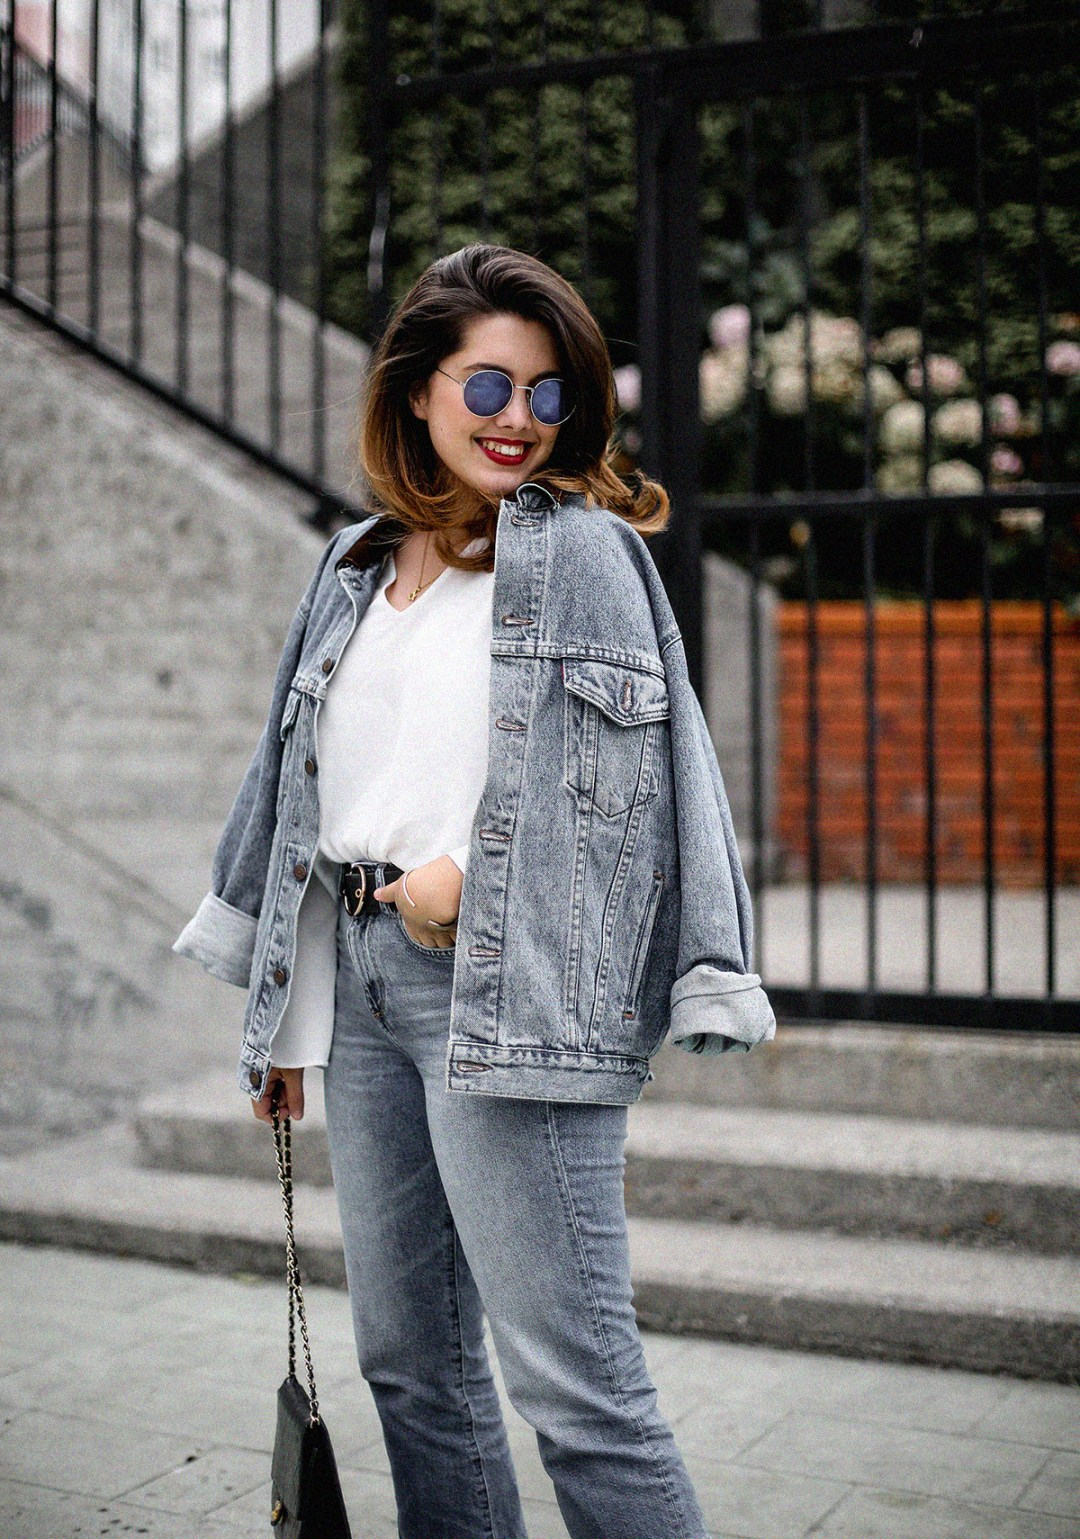 double-denim-look-vintage-jacket-levis-golden-goose-sneakers-outfit8